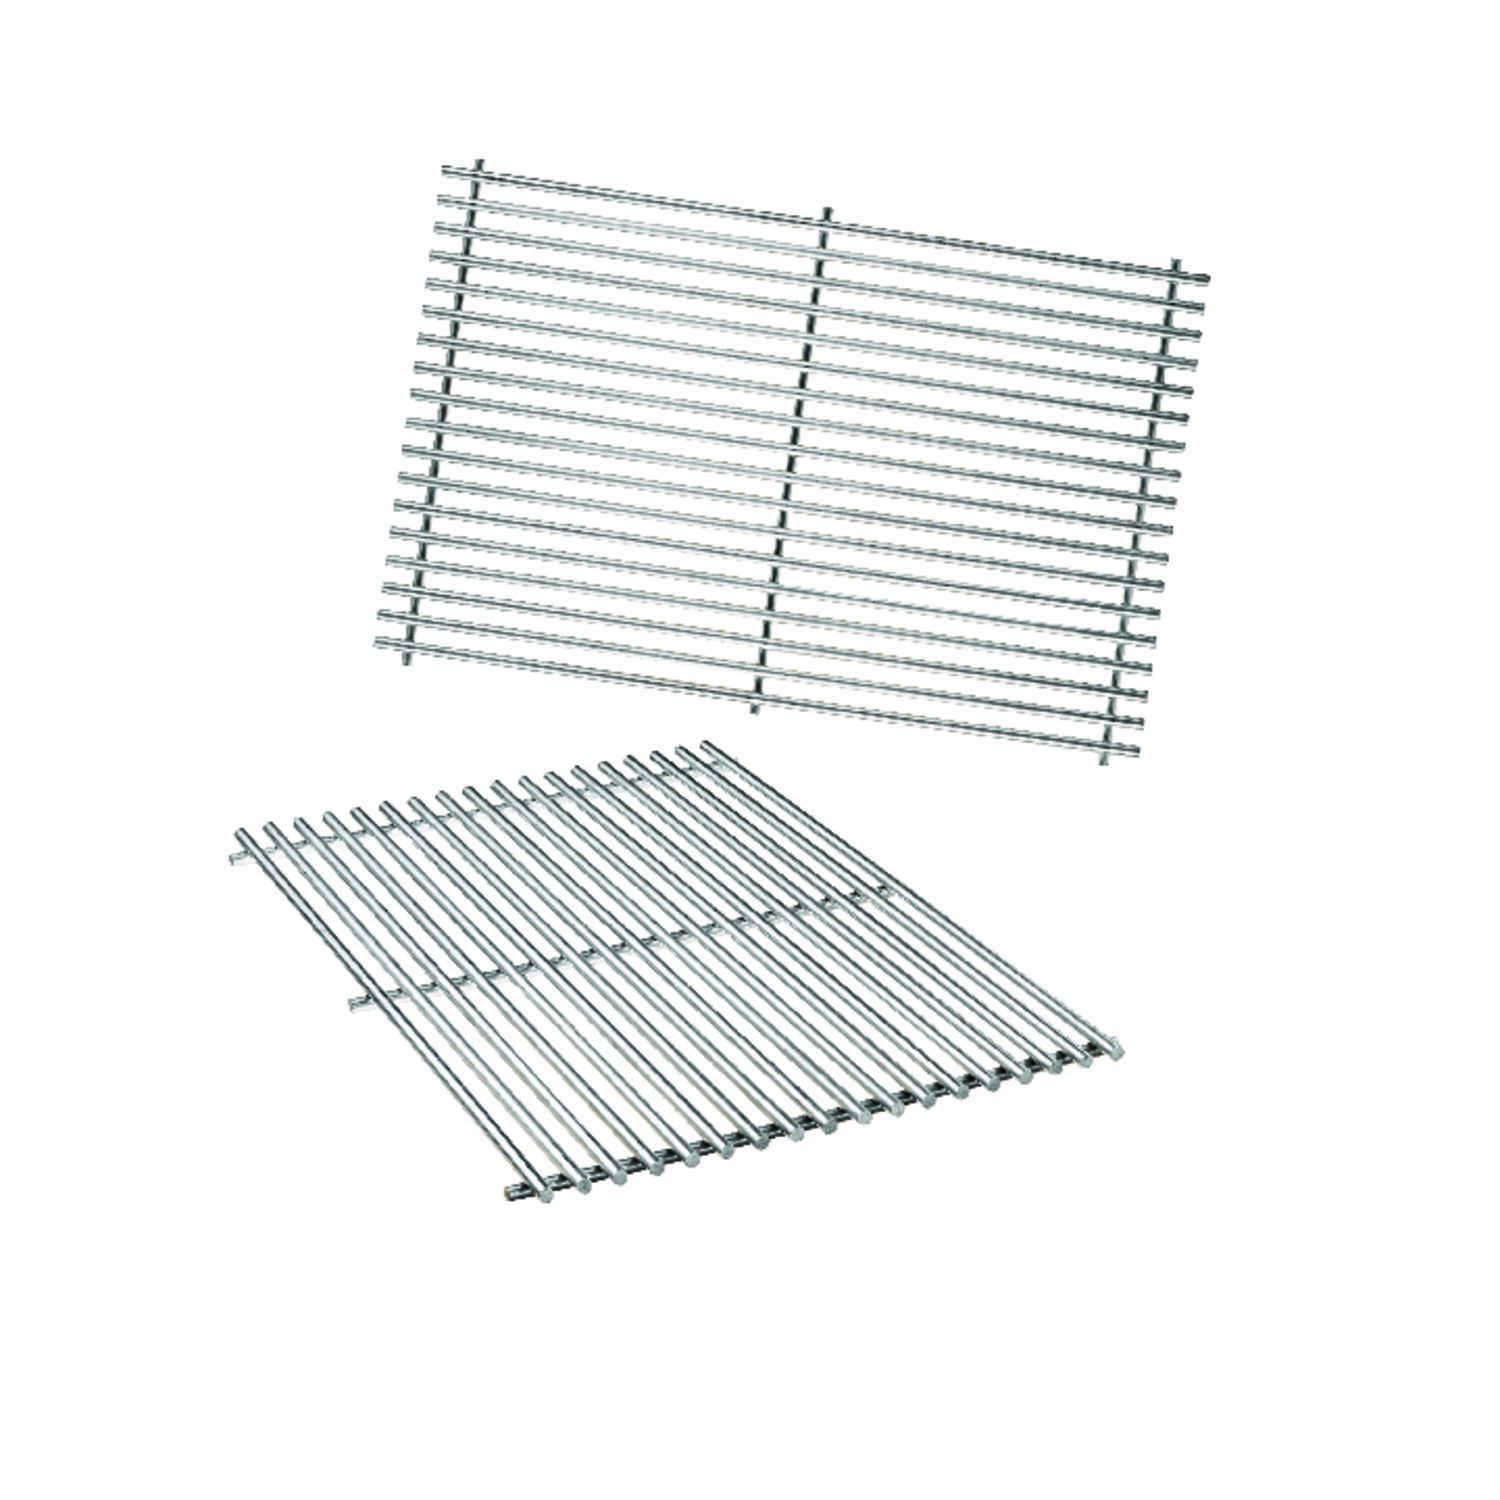 Weber  Genesis 300 Series  Stainless Steel  Grill Cooking Grate  0.6 in. H x 12.9 in. W x 19.5 in. L